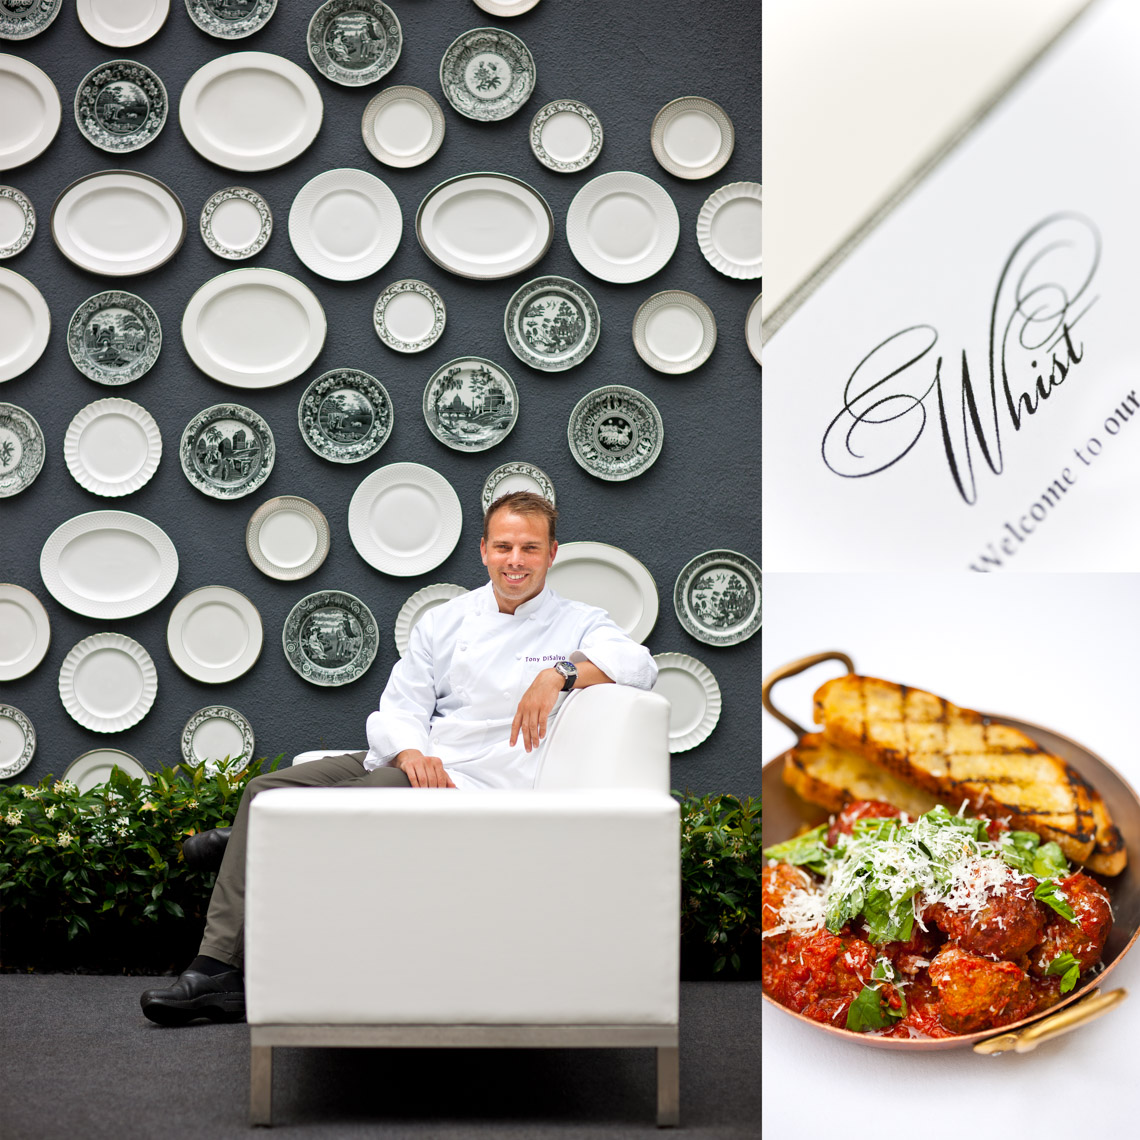 Los Angeles Photographer | Dana Hursey Photography | Top Chef Photography | Tony DiSalvo - Whist